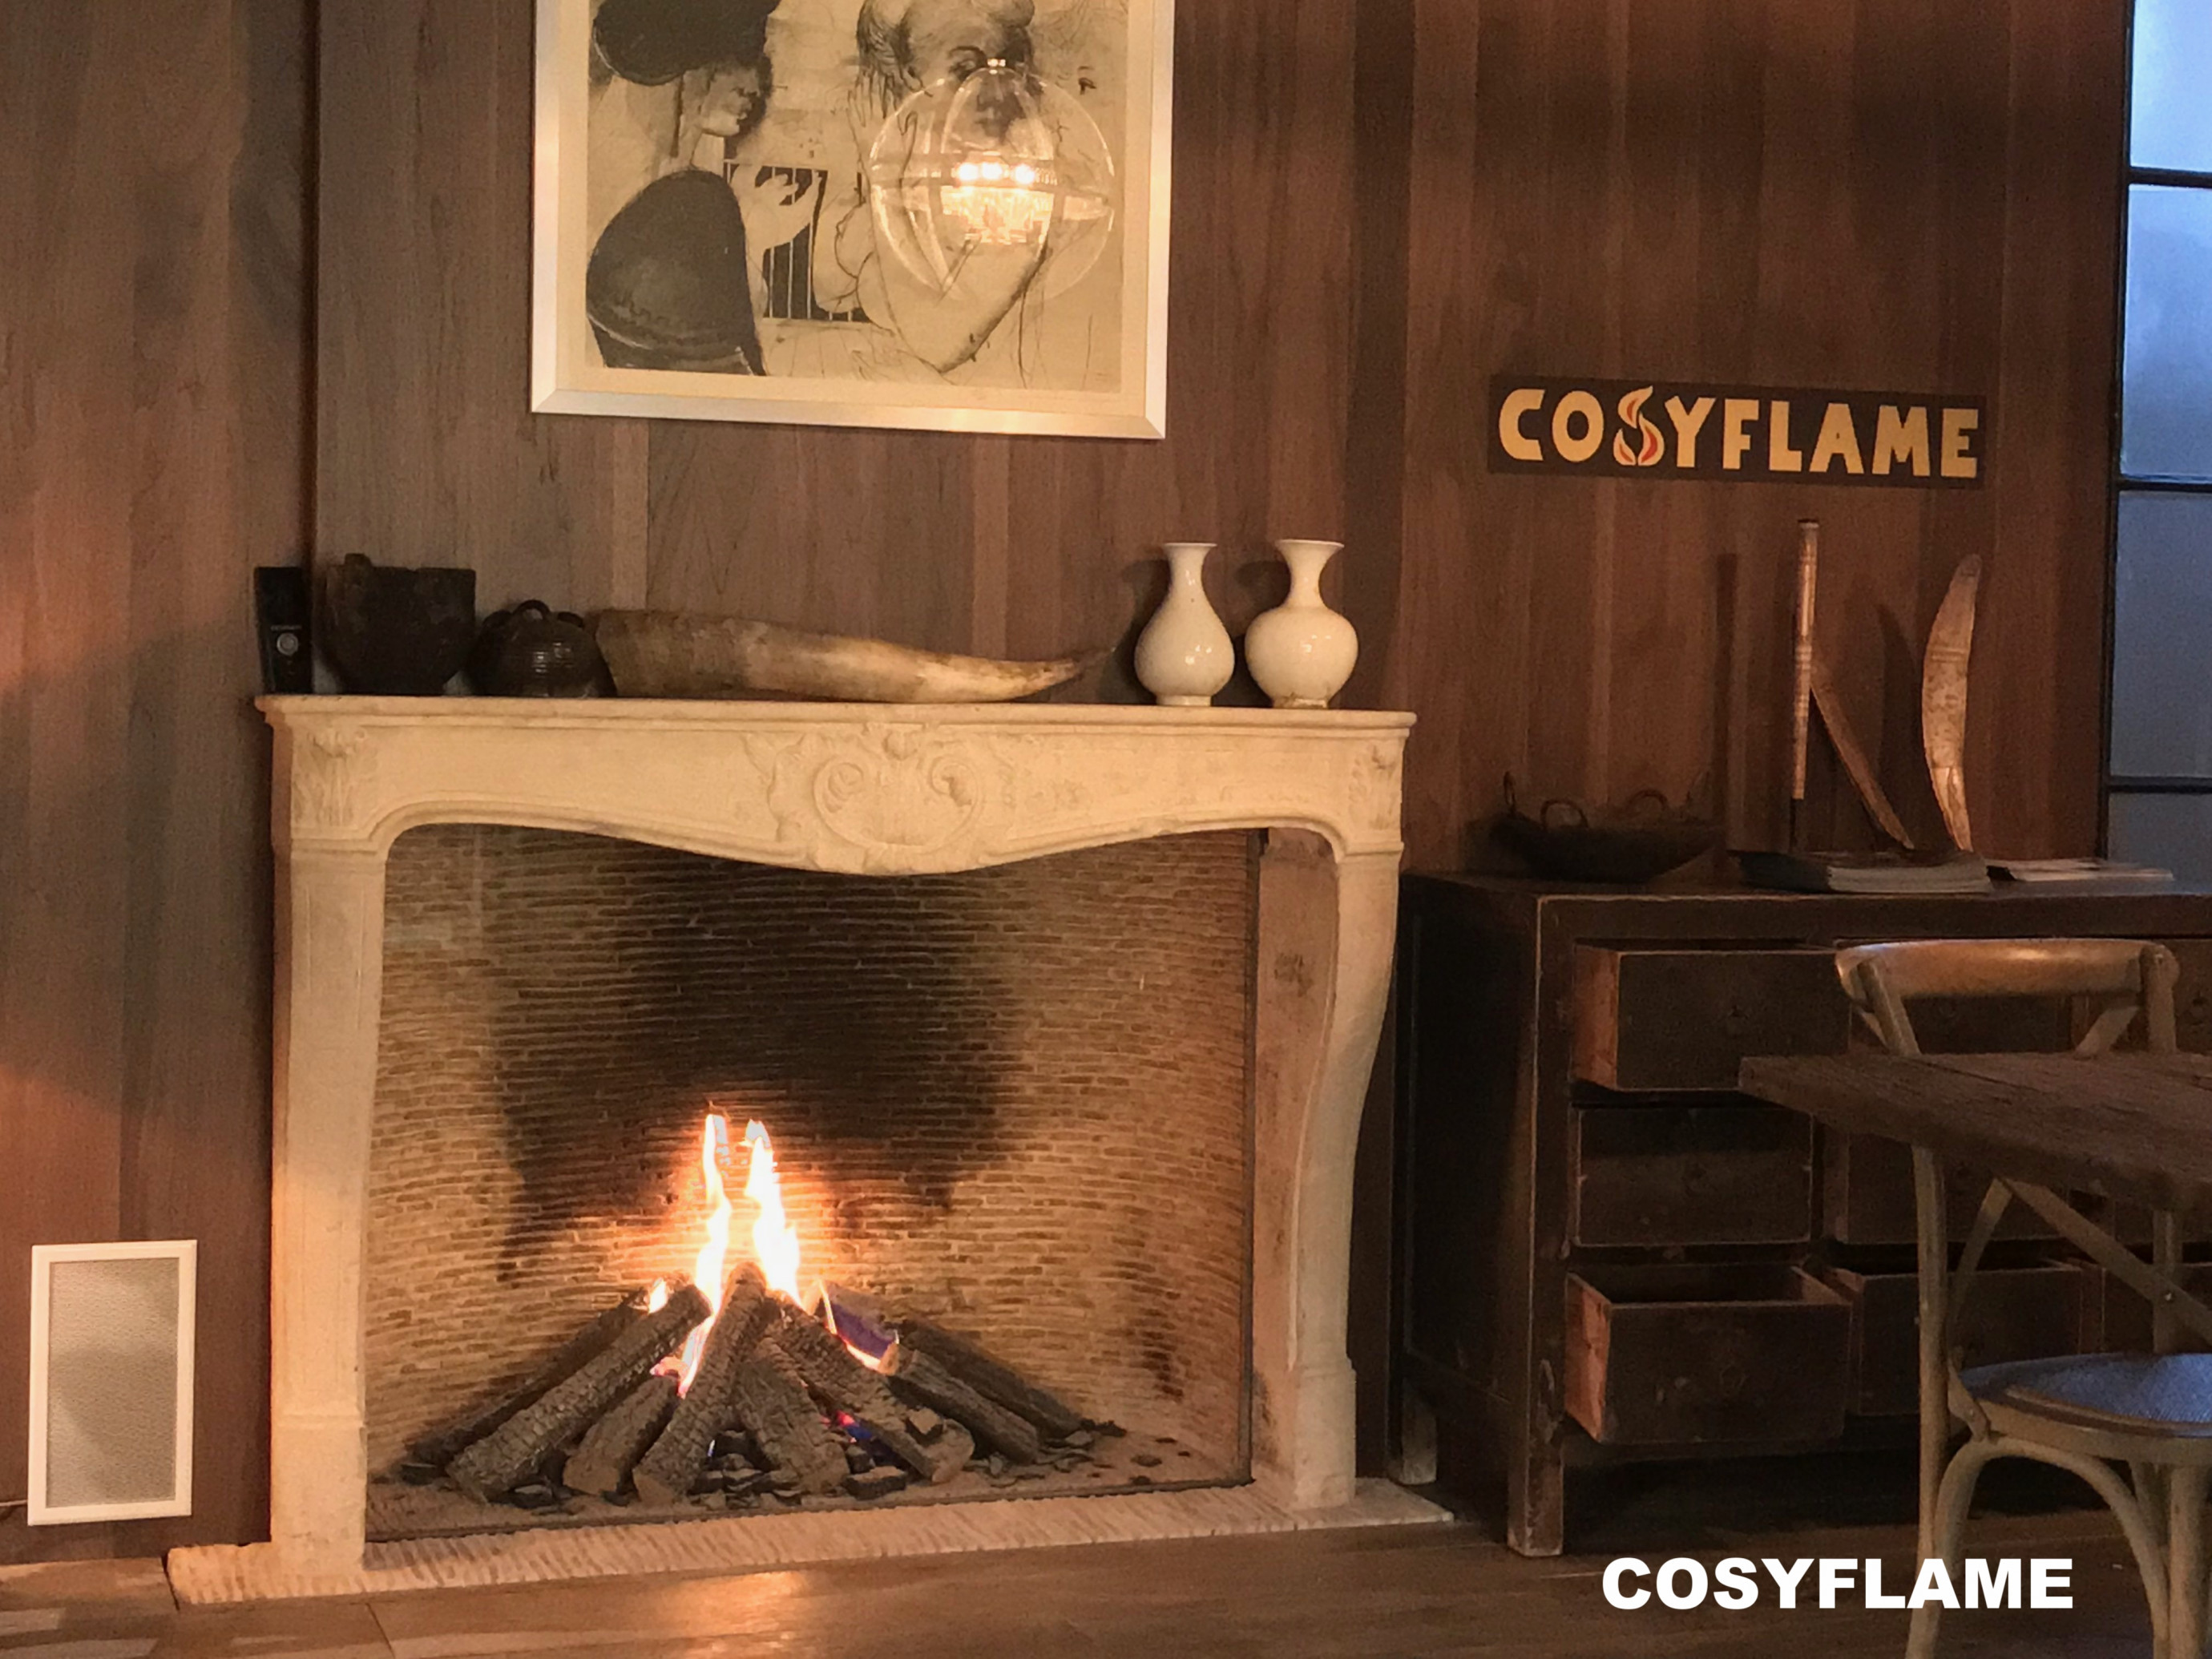 Cosyflame-Beurzen-file2-13.jpeg